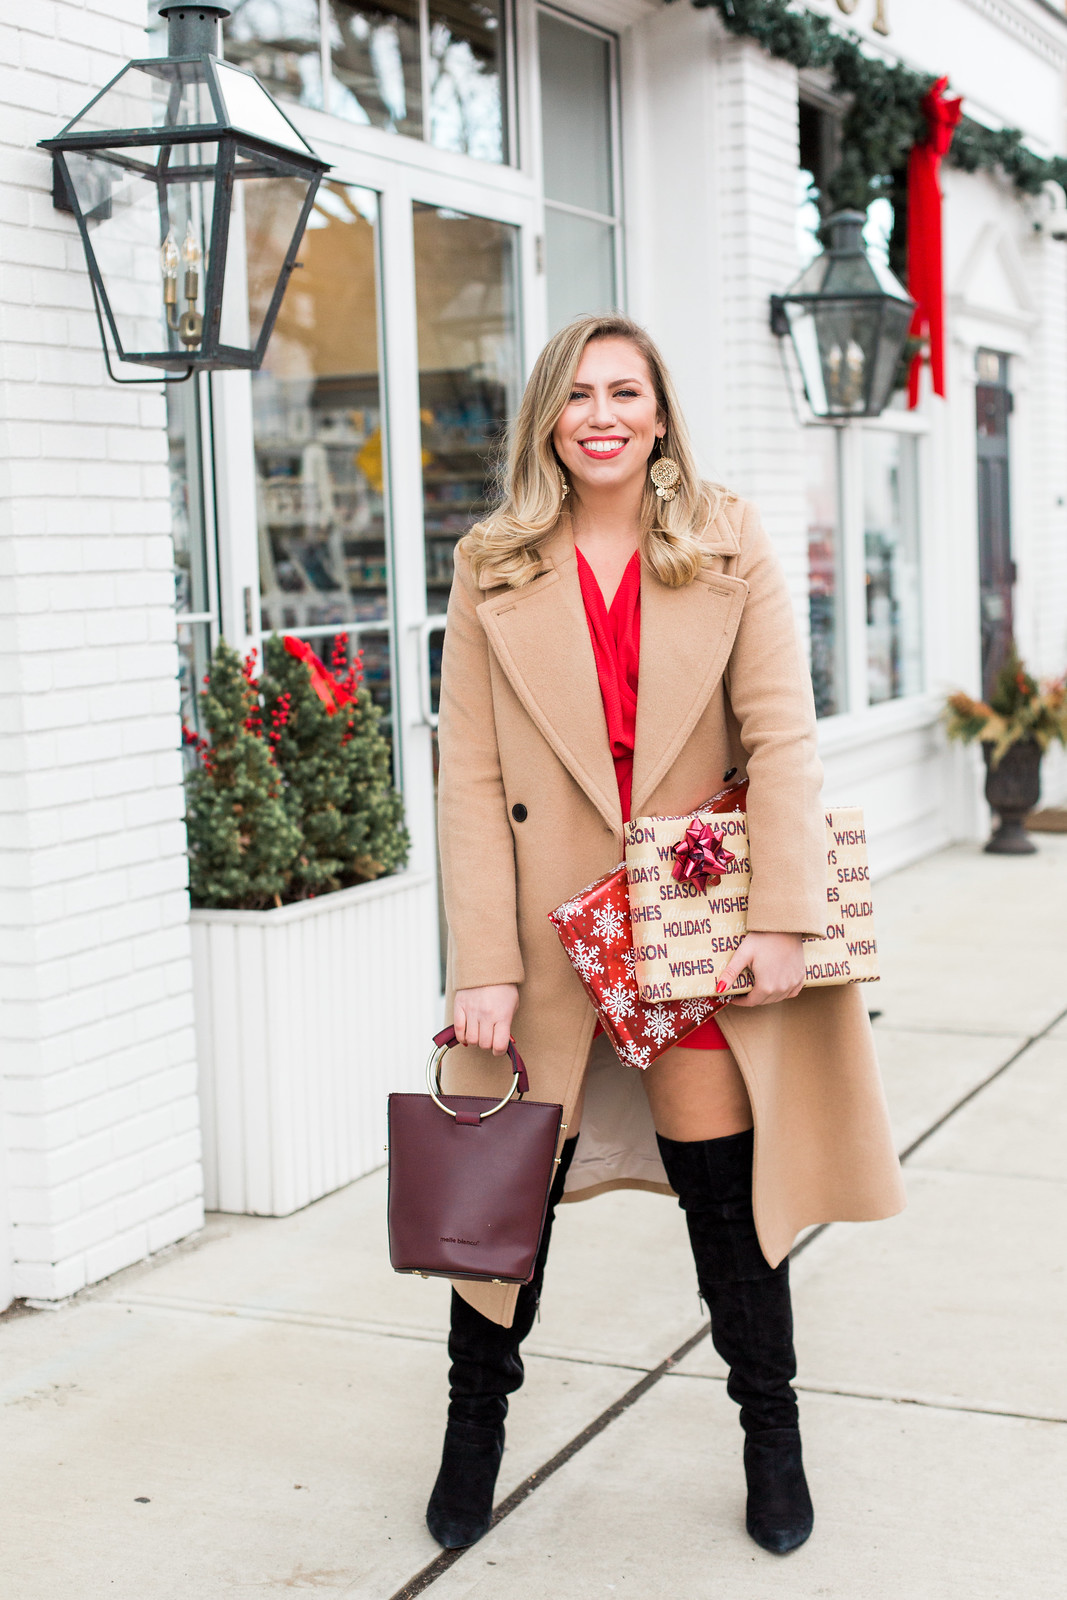 Club Monaco Daylina Camel Coat | 10 Classic Winter Coats You'll Never Regret Buying | Darien, CT Kristina Staal Photography